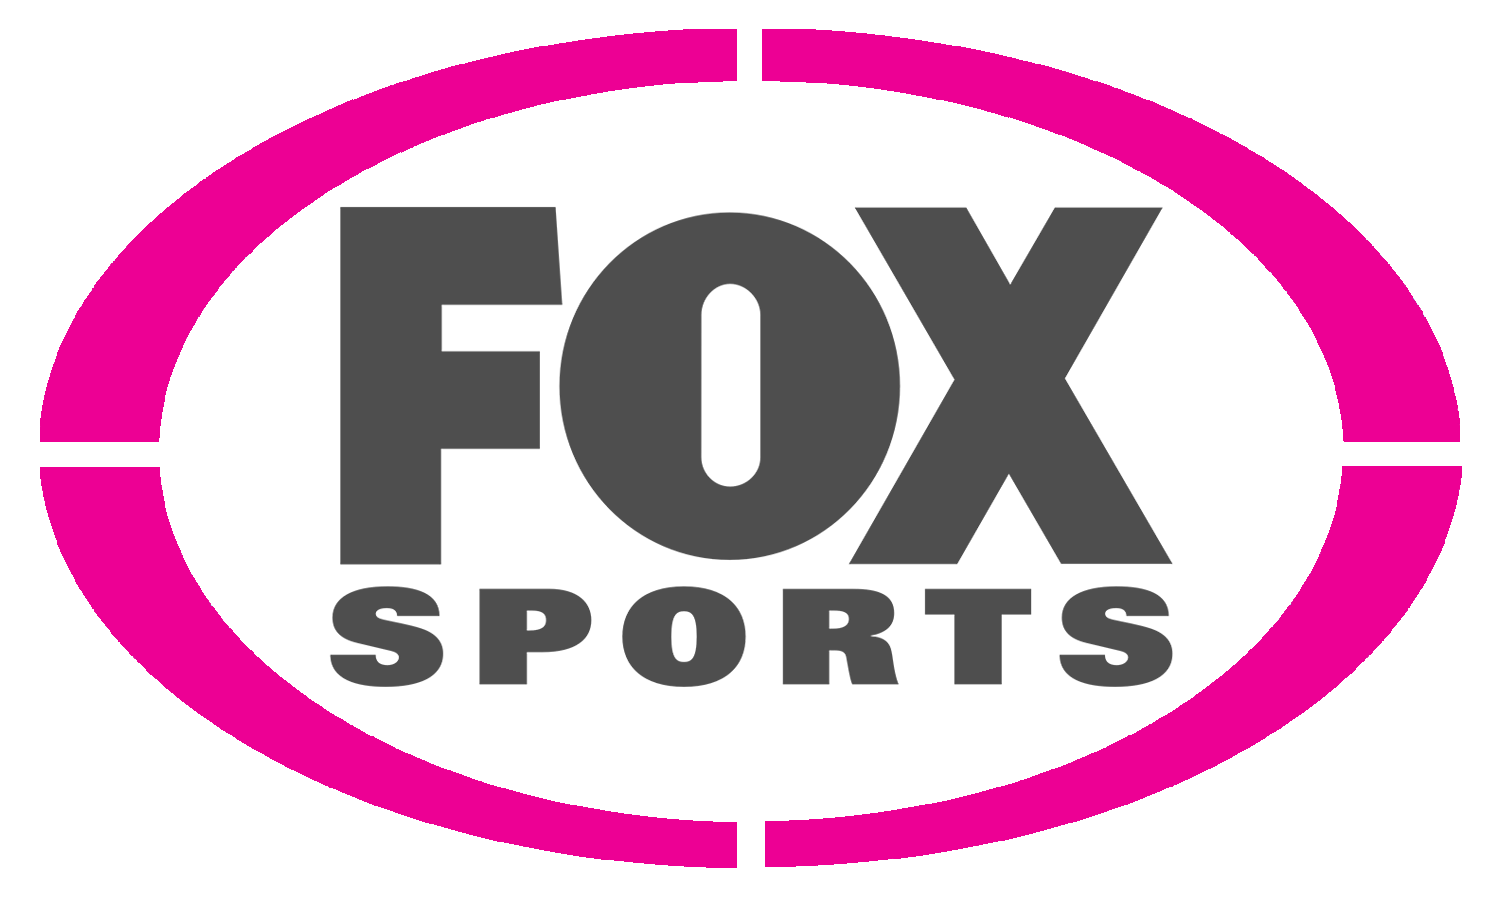 Frequency to Watch FOX Sports on Satellites - Channels Frequency